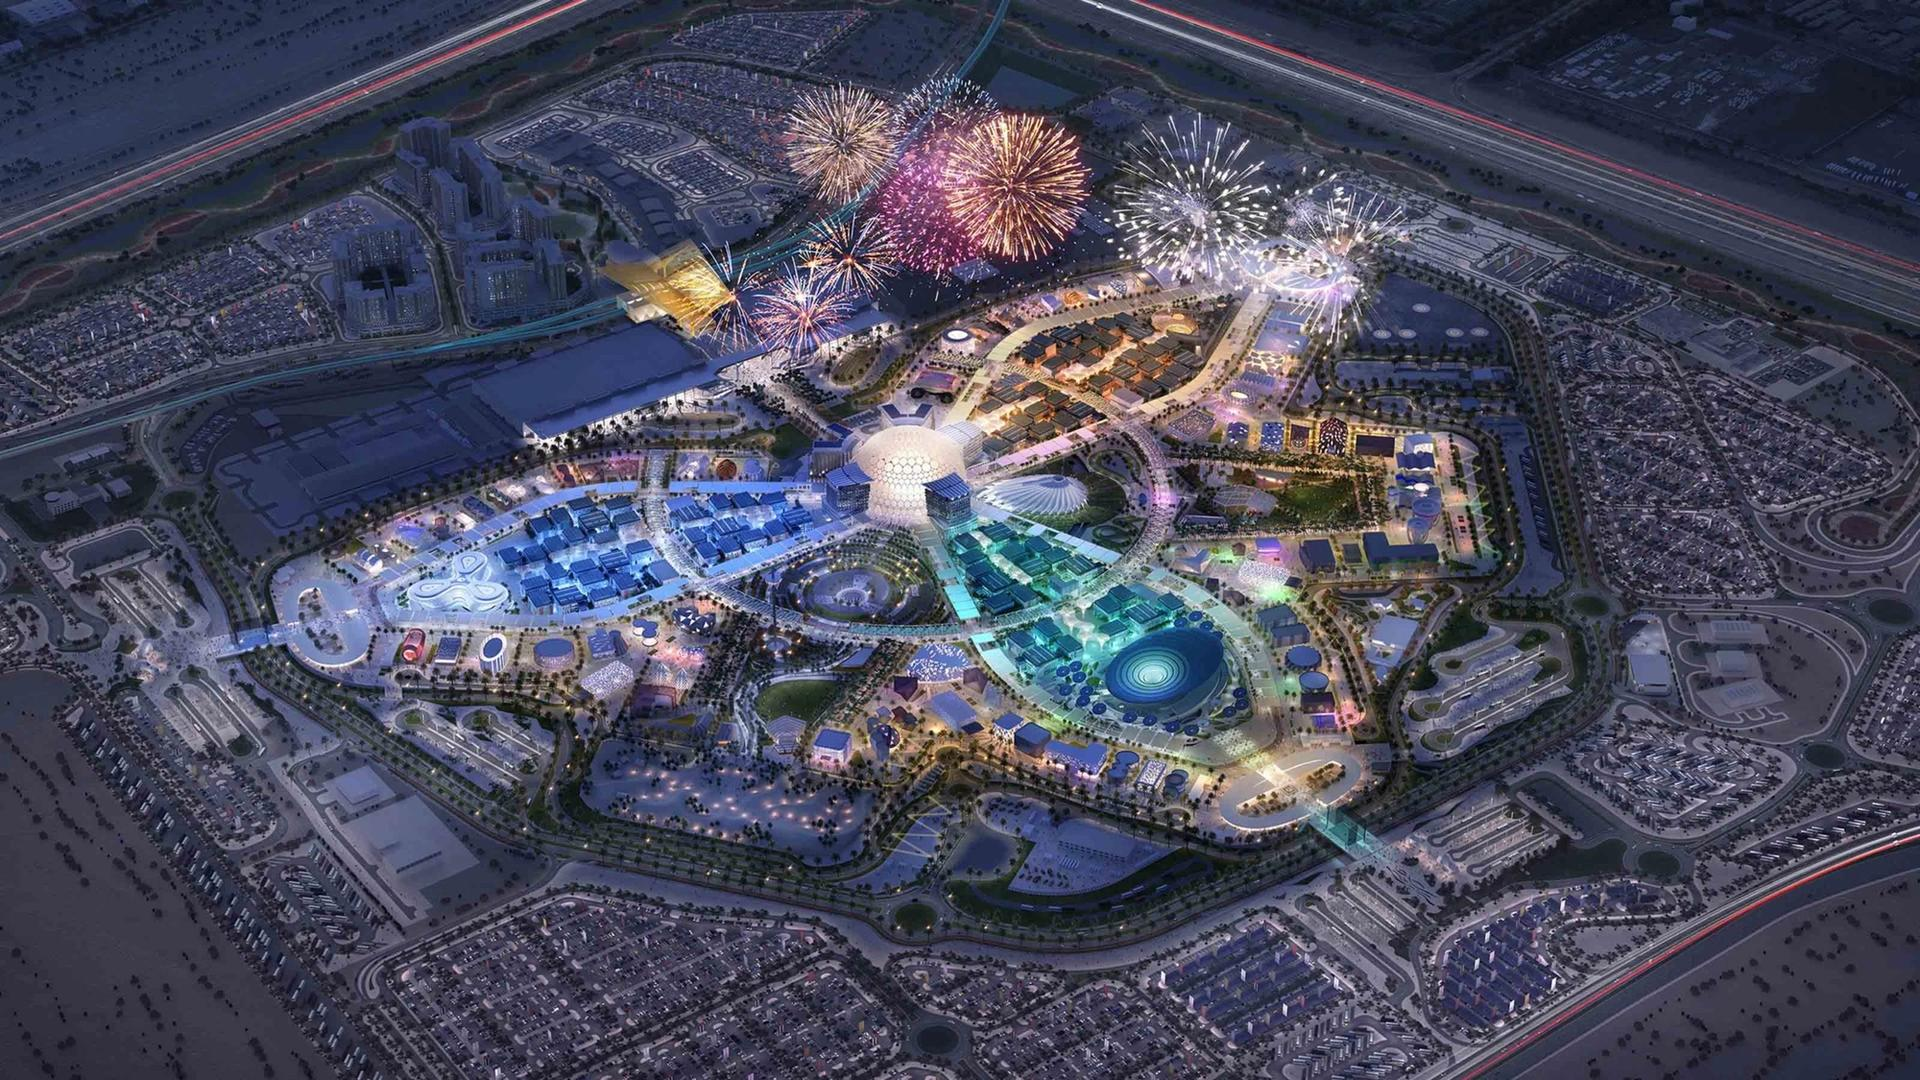 A masterplan rendering of Expo 2020 at night Image courtesy of Expo 2020 Dubai/The Walshe Group